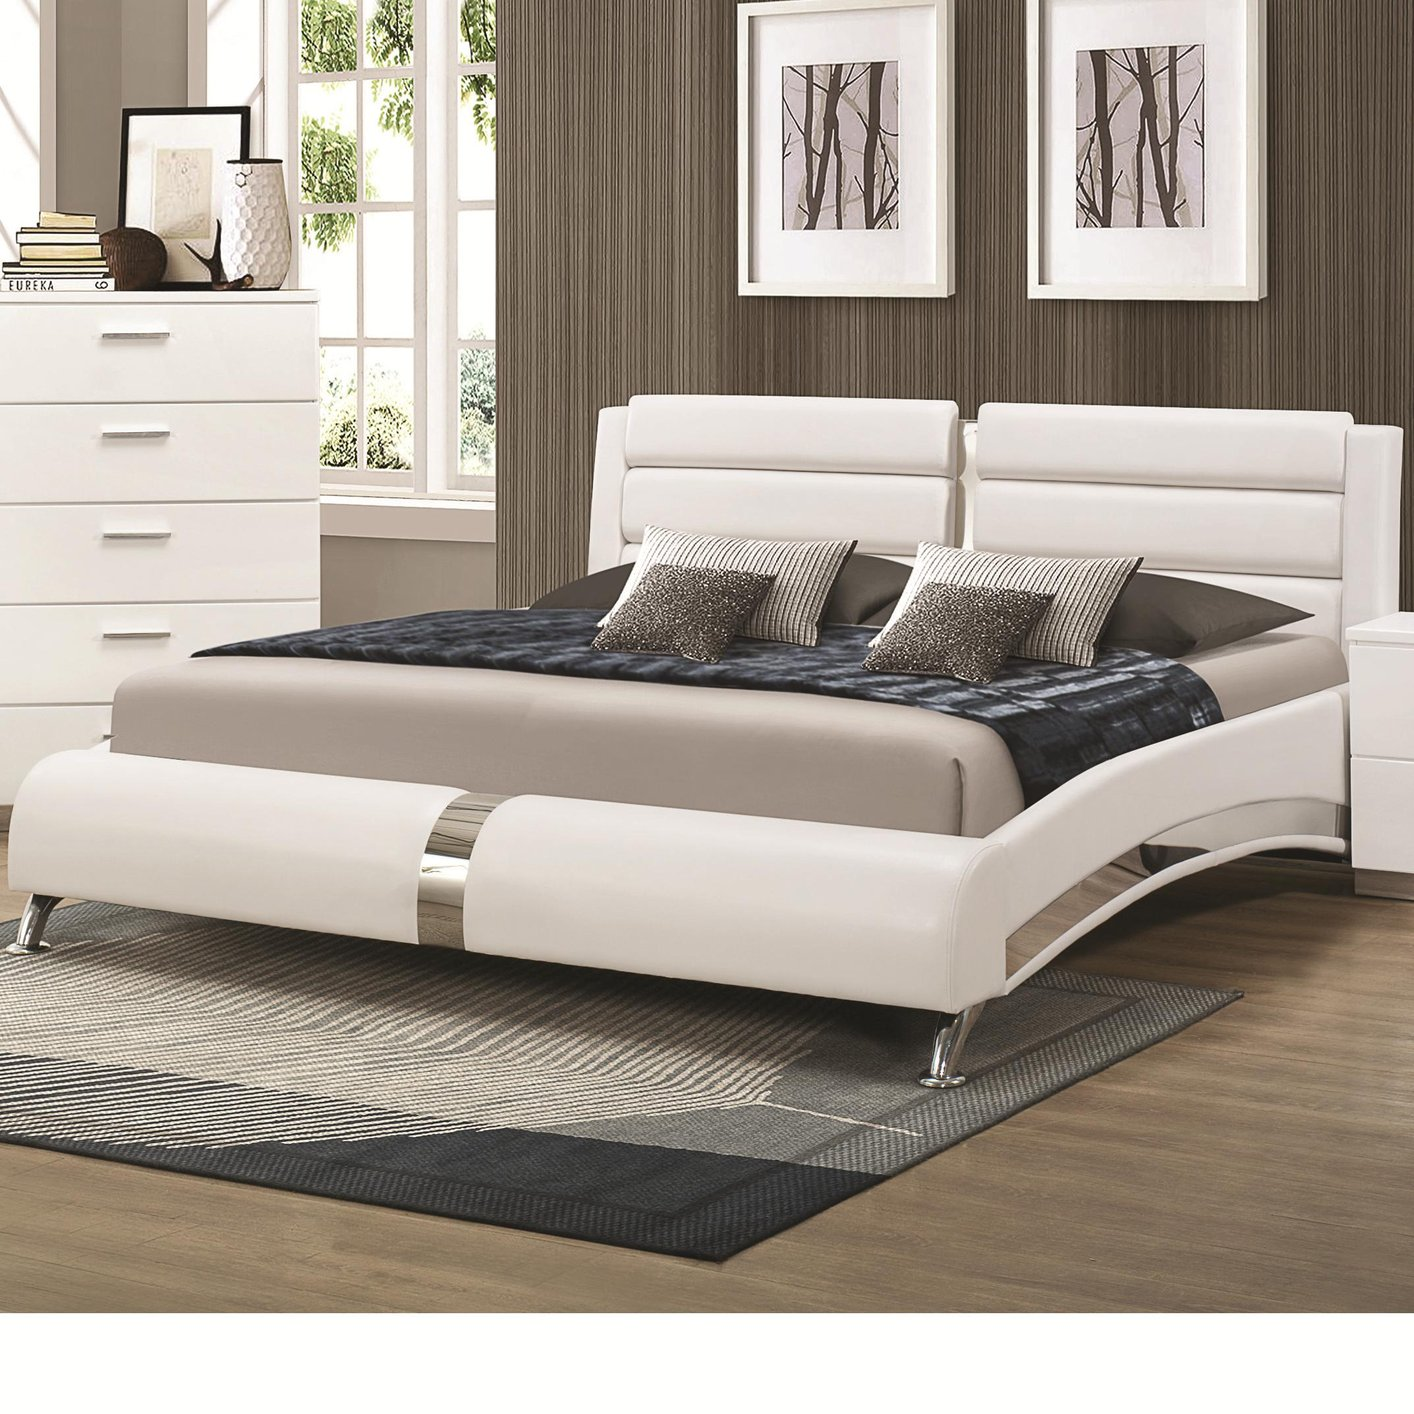 Coaster 300345kw silver california king size wood bed for Furniture and mattress warehouse king